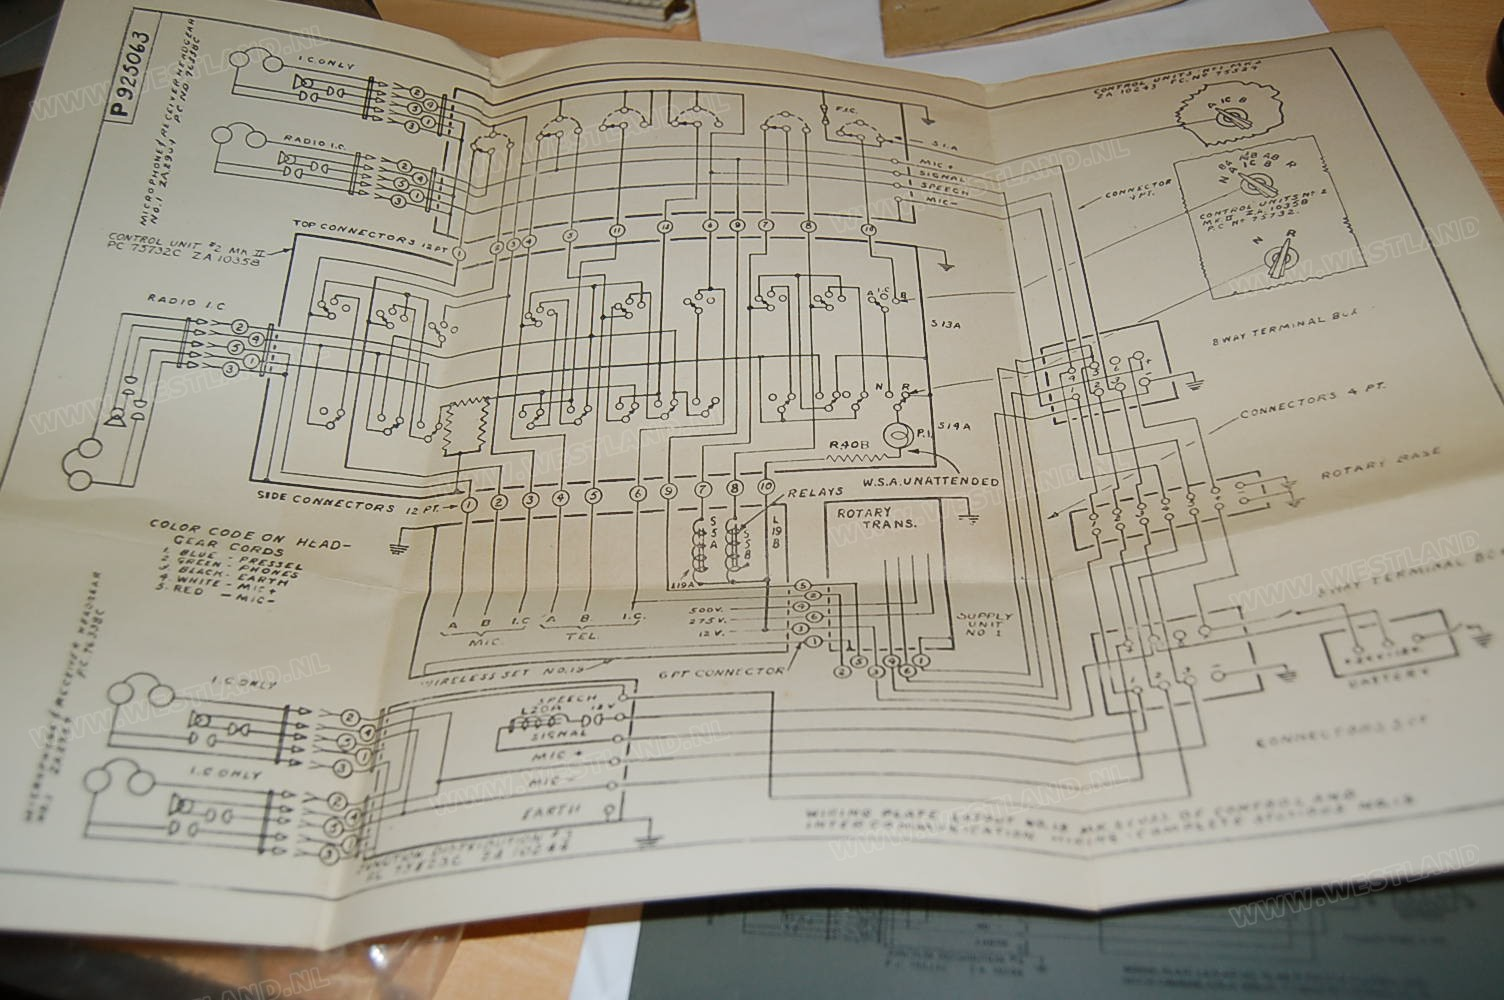 DSC_07222 Jeep Parts M A Wiring Diagram on m151a2 wiring diagram, mutt wiring diagram, cj3a wiring diagram, cj5 wiring diagram, jeep wiring diagram, cj7 wiring diagram, truck wiring diagram, yj wiring diagram, cj2a wiring diagram, m998 wiring diagram, m38 wiring diagram, coleman wiring diagram, tj wrangler wiring diagram, mule wiring diagram, m715 wiring diagram, m151a1 wiring diagram, grand wagoneer wiring diagram, 4x4 wiring diagram, humvee wiring diagram, dc amp meter wiring diagram,